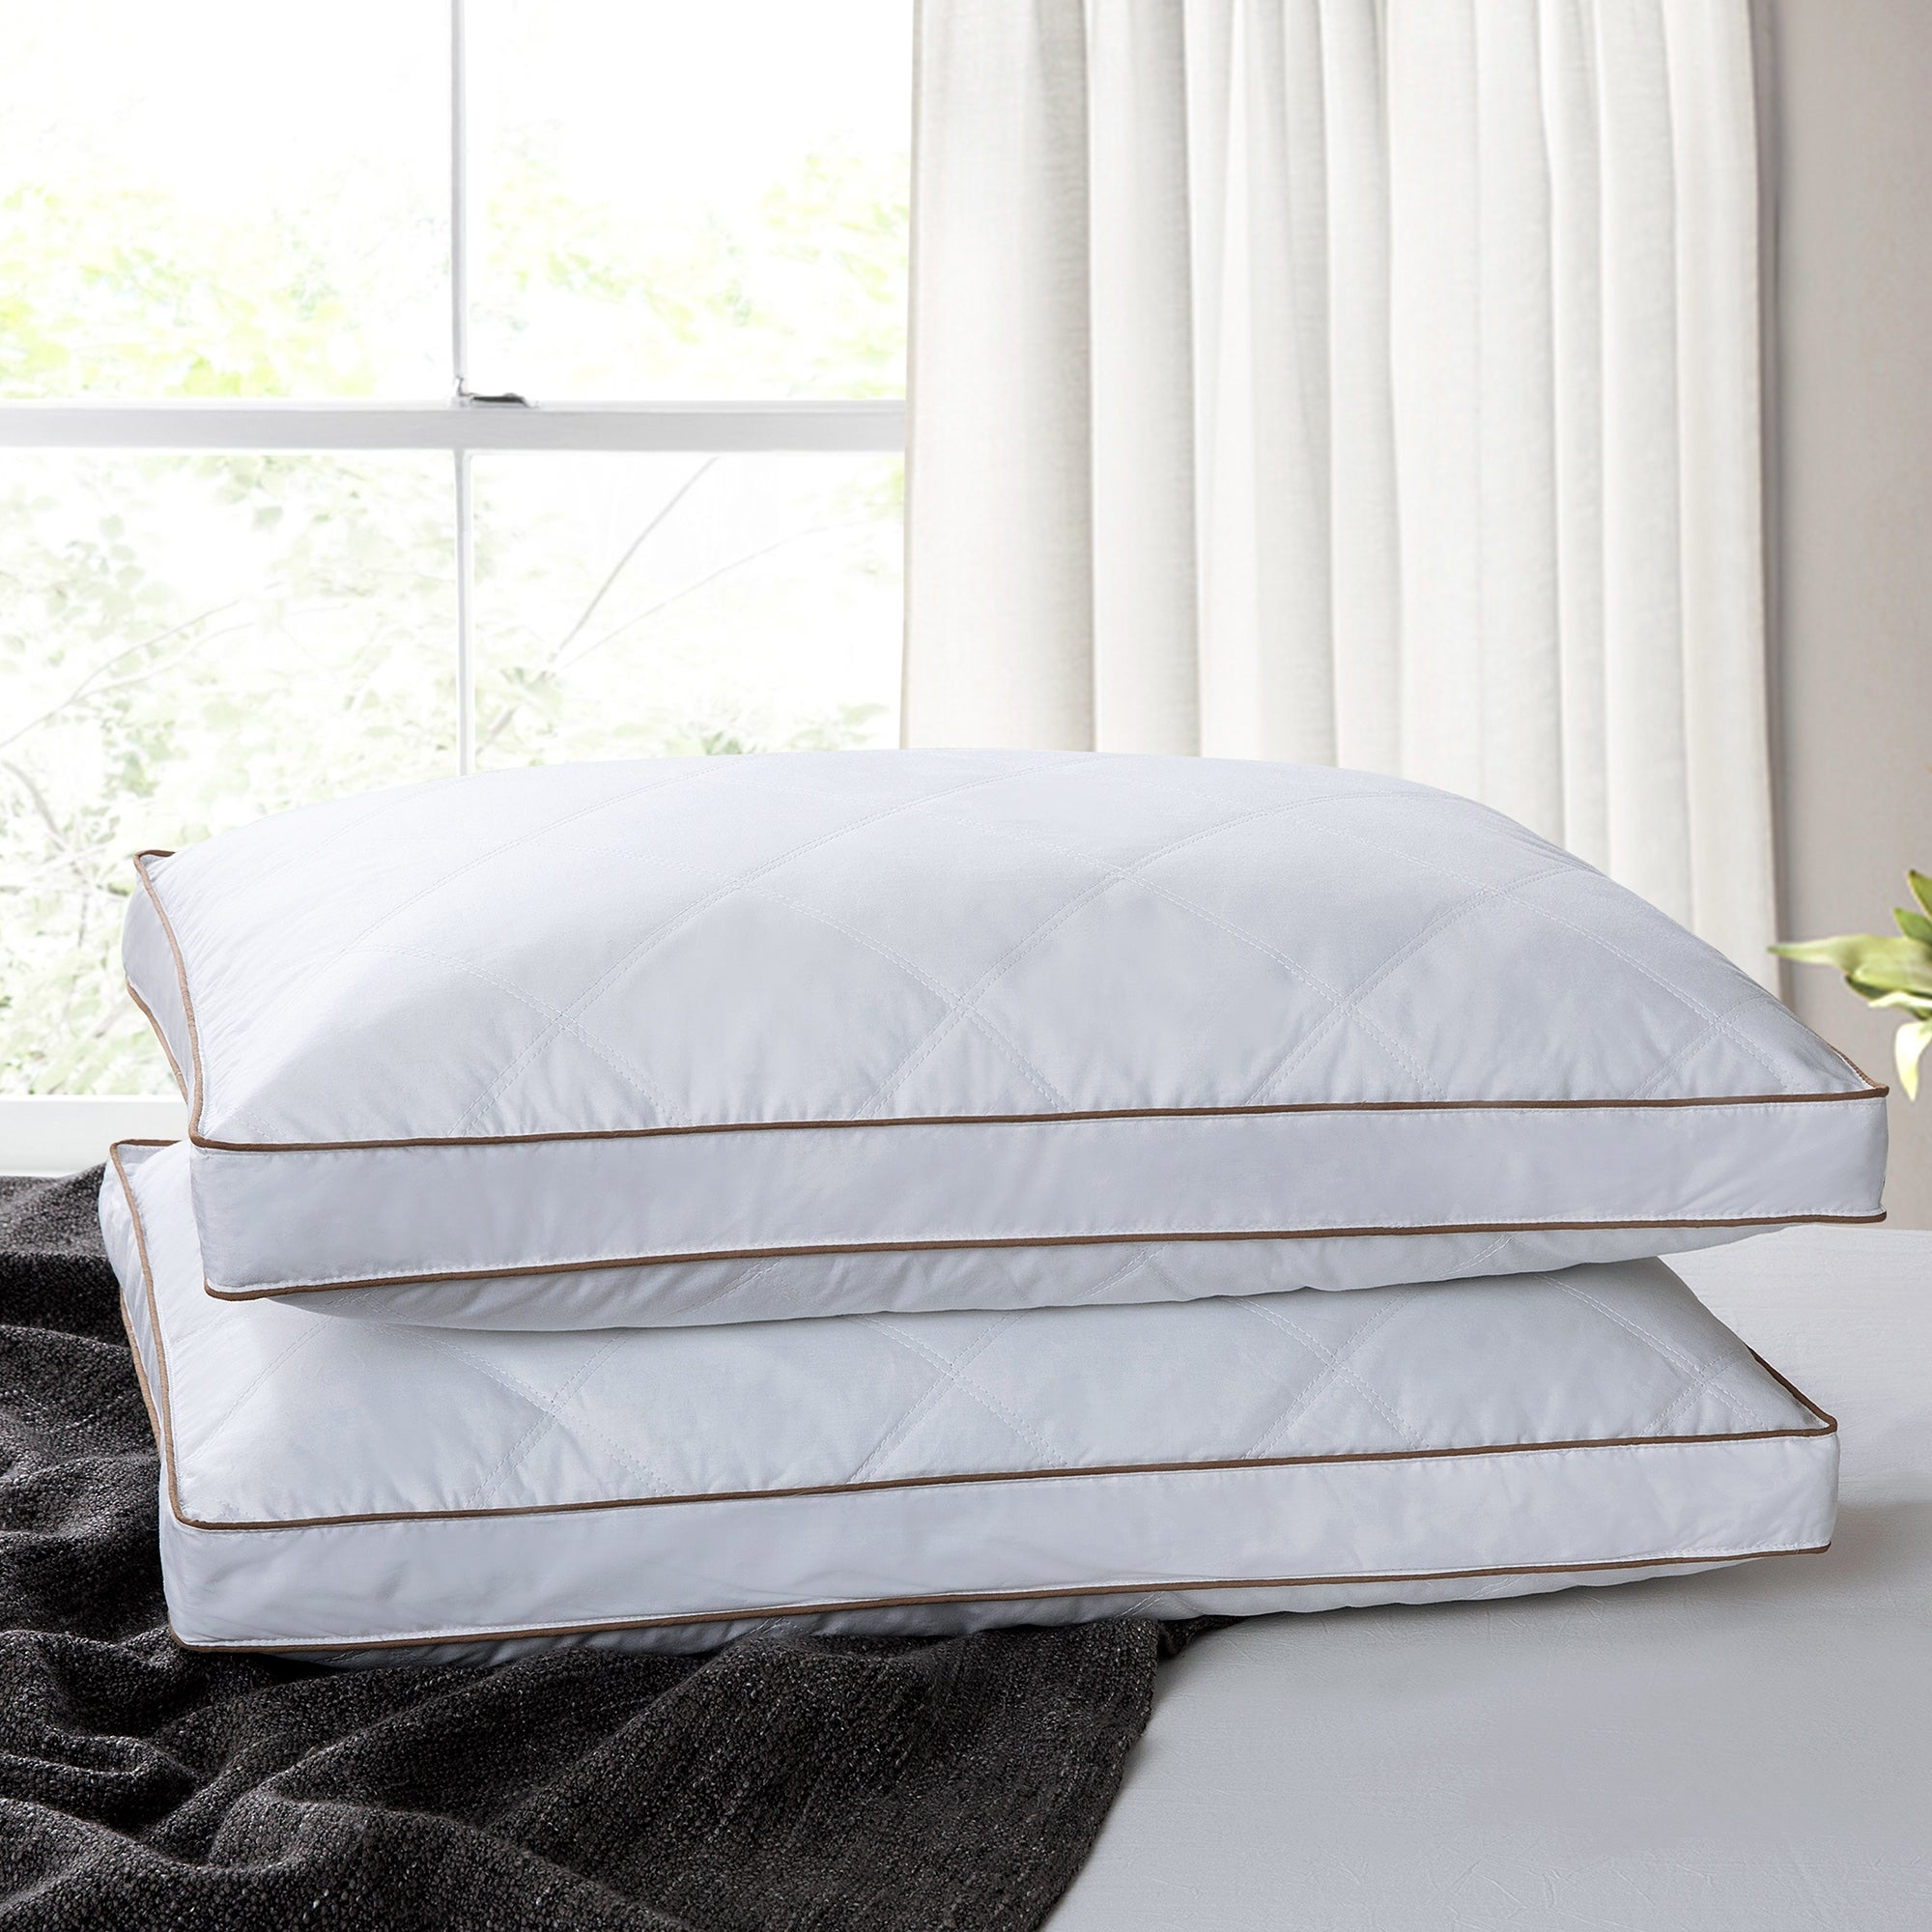 Down Alternative Pillows Gusseted Pack of 2 Bed Sleeping Pillow Queen King Size